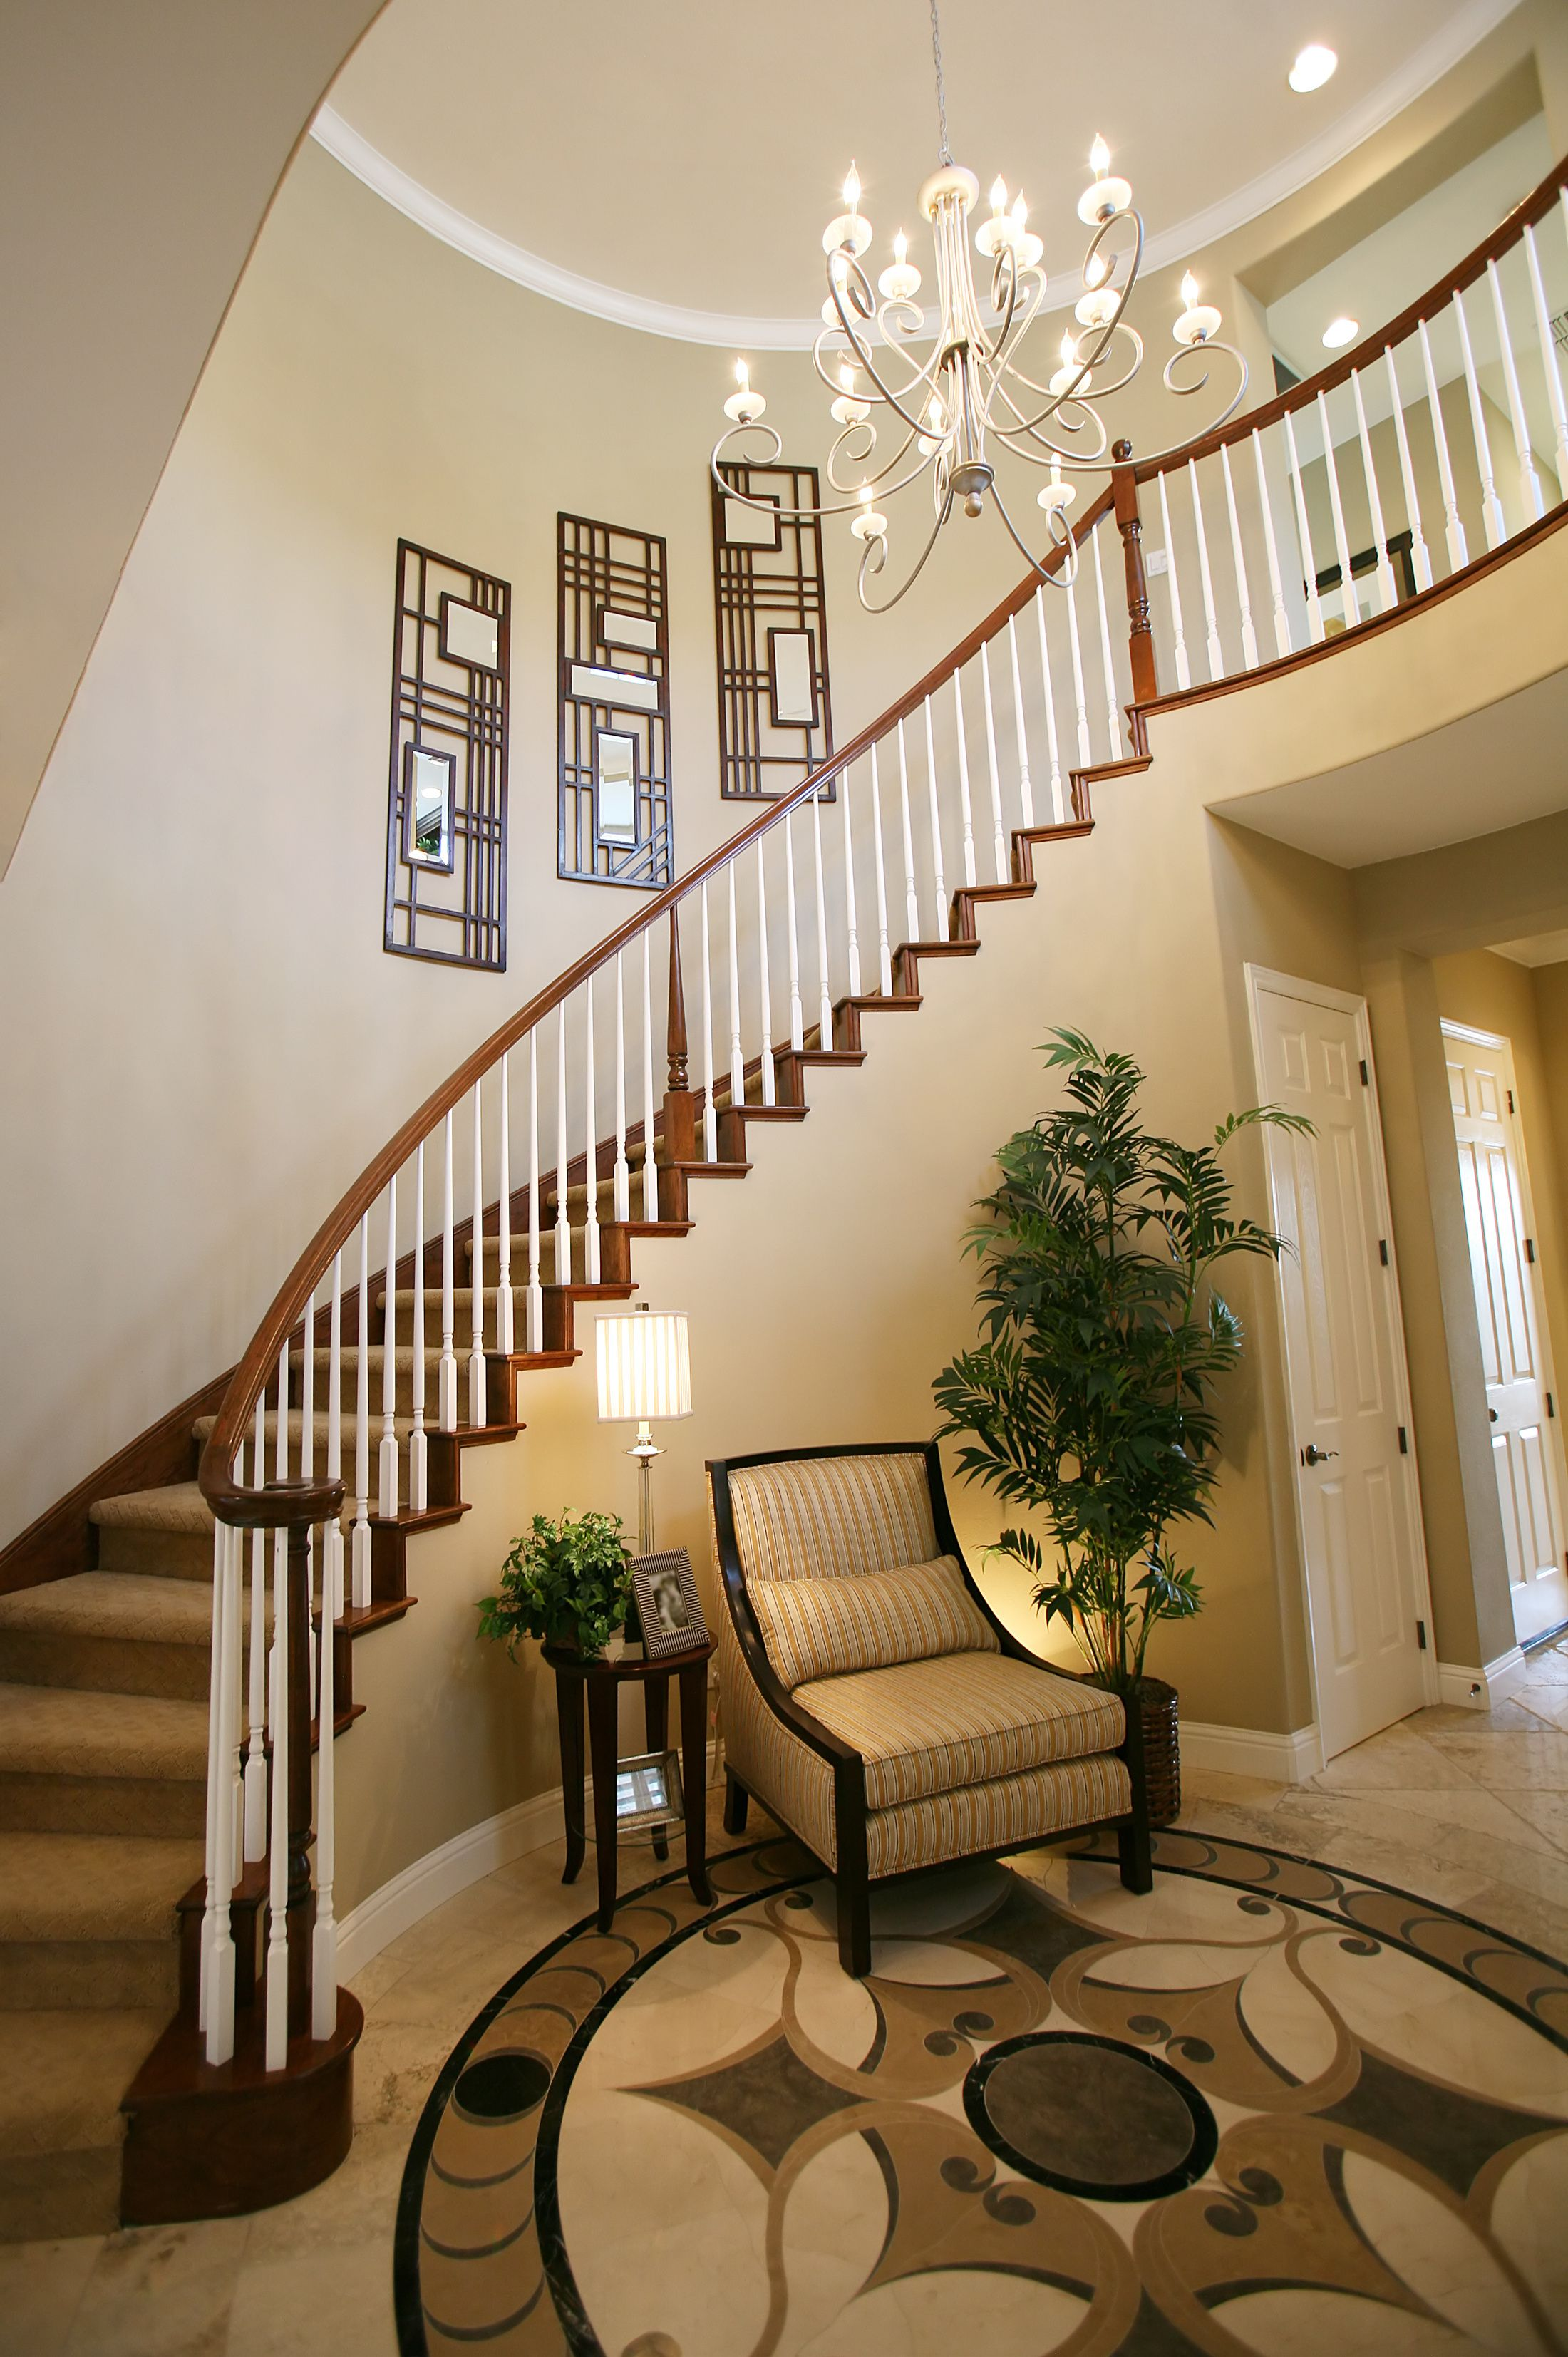 home interior design stairs%0A Elegant chandelier complements the classic look of the staircase  Beautiful  HomesBeautiful Home InteriorsEntryway